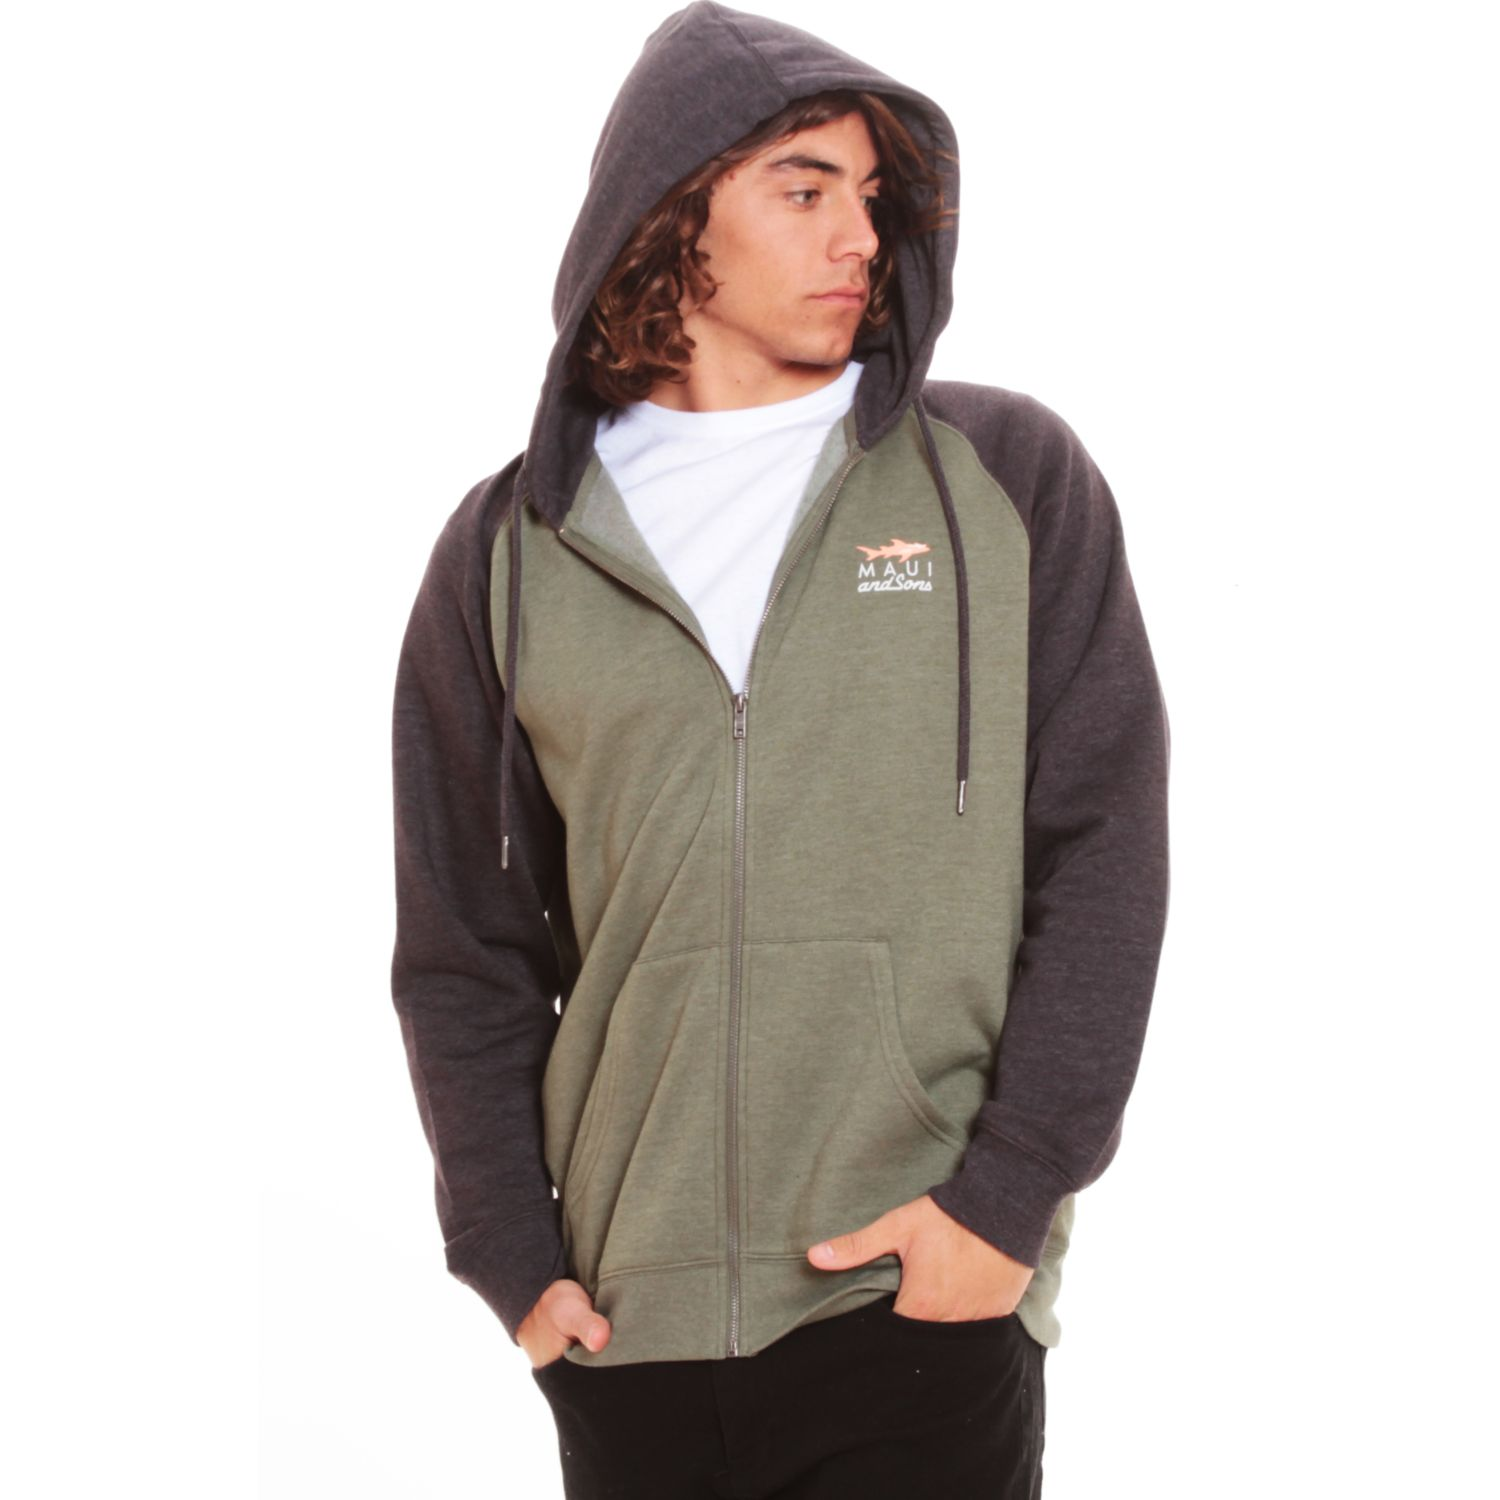 MAUI AND SONS Poleron Fullzipper 5O158-MV20 Verde Pullovers